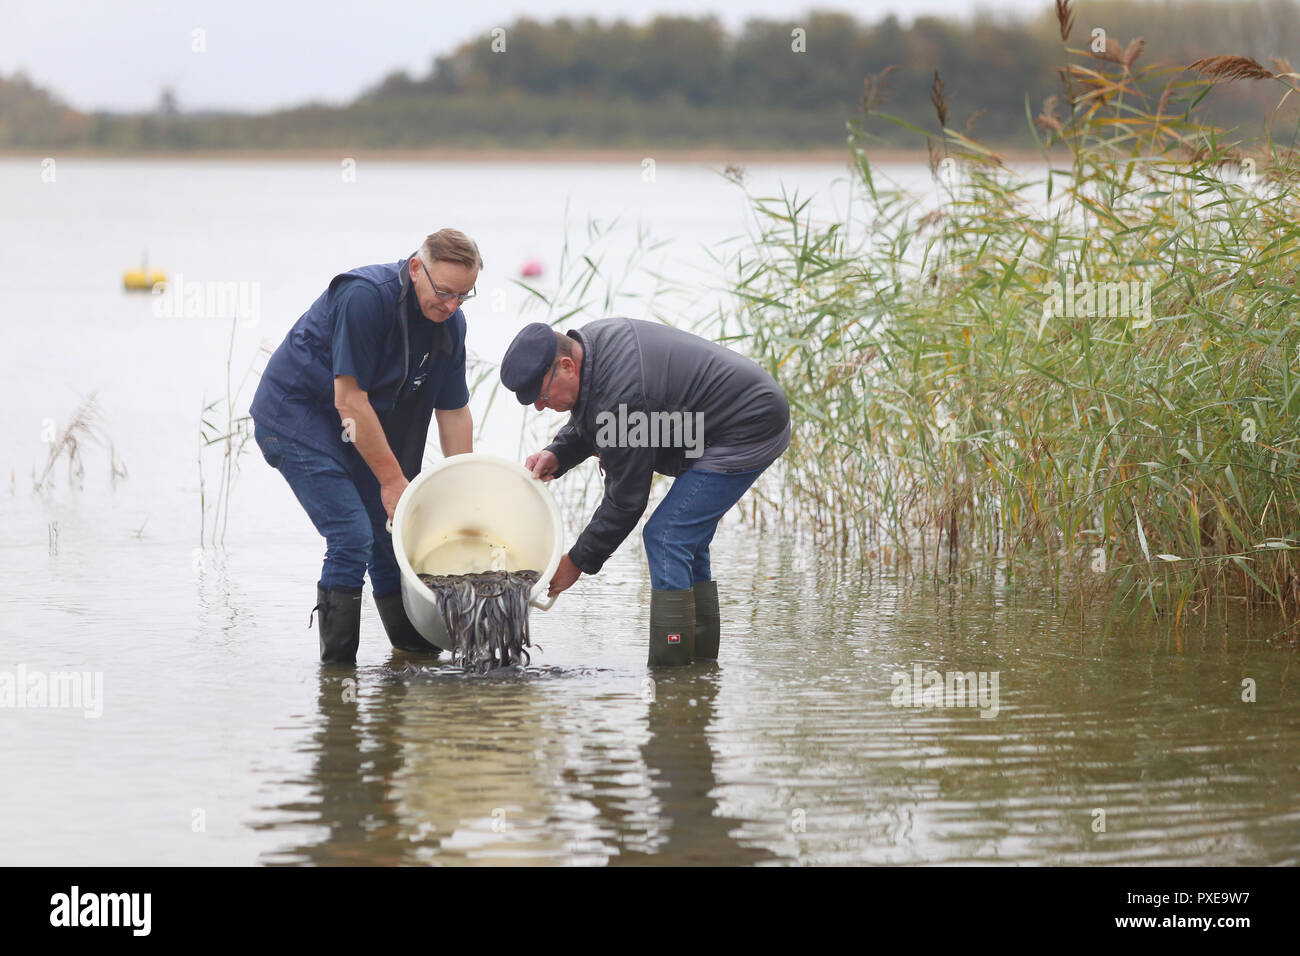 """22 October 2018, Mecklenburg-Western Pomerania, Goldberg: Klaus-Dieter Dehmel (l), fishermen from Dabel and Wolfgang Geibrasch, fishermen from Lohmen and managers of the Goldberger See expose pre-stretched (fed) young eels in the Goldberger See. For 25 years, the """"Landesanglerverband MV"""" has occupied eels worth around 100,000 euros annually. The campaign """"Save the European Eel"""" should contribute to the conservation of eels in Mecklenburg-Vorpommern. Photo: Danny Gohlke/dpa-Zentralbild/dpa Stock Photo"""